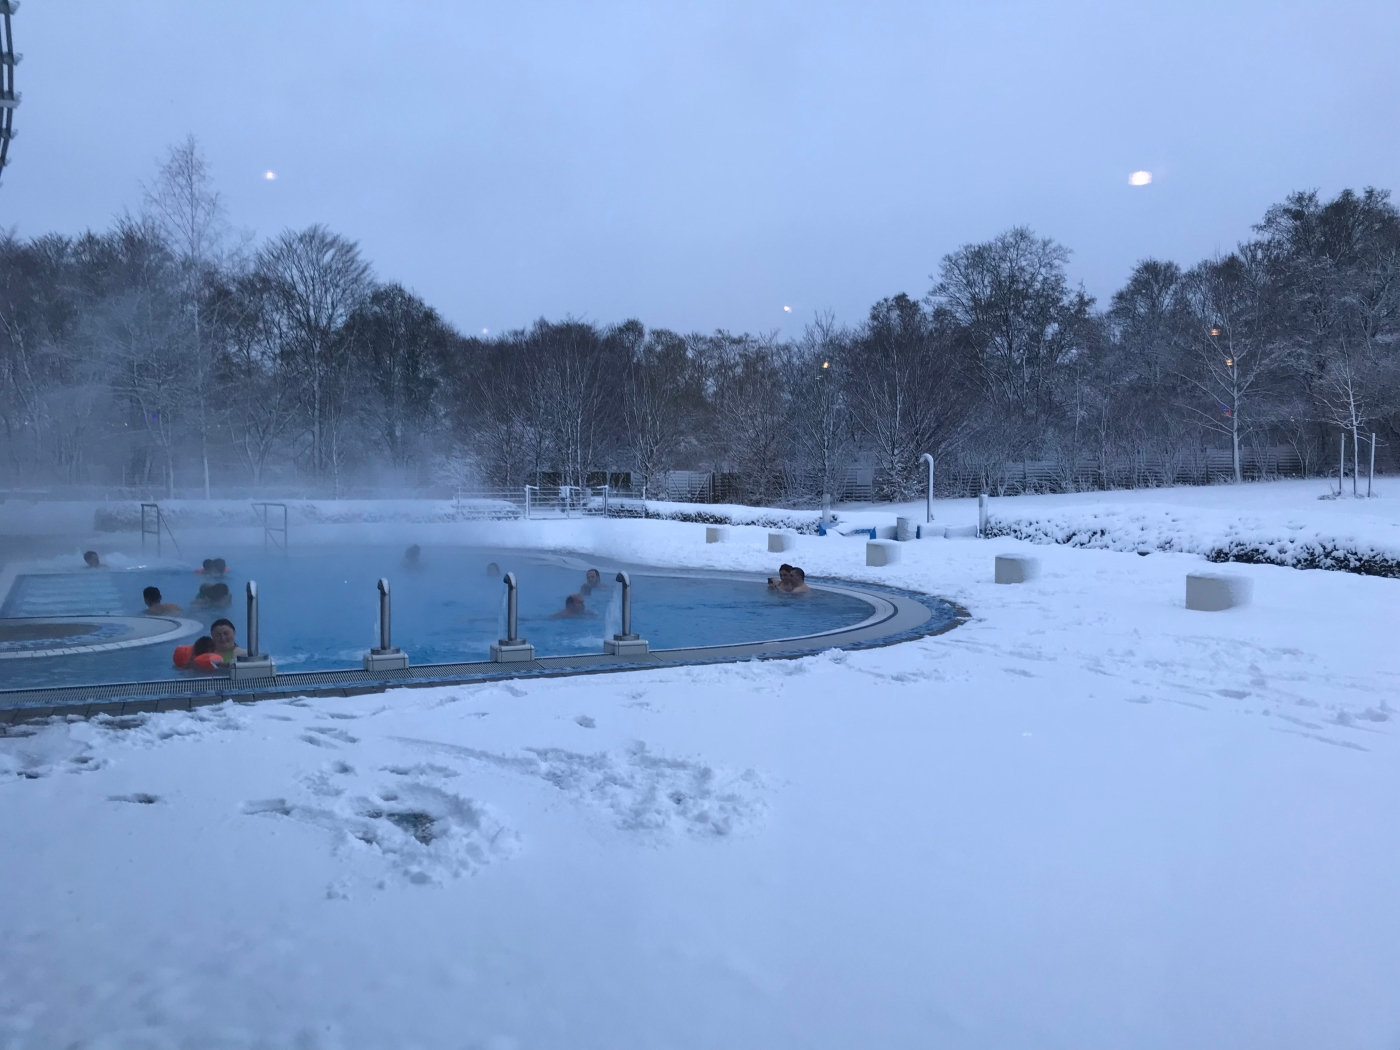 westbad outdoor pool in winter - westbad munich